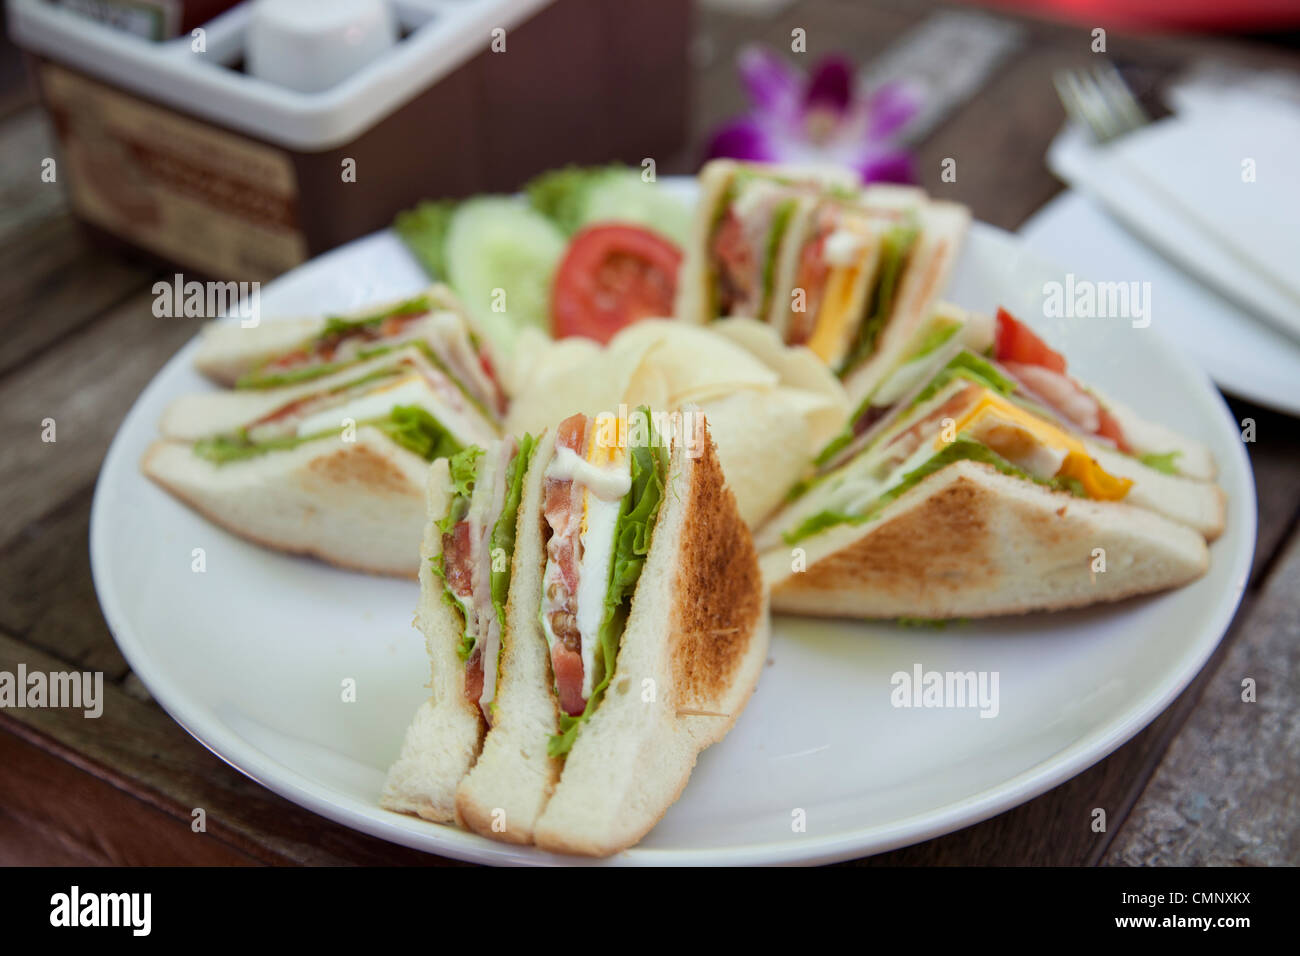 Club sandwich with coffee on wood background - Stock Image